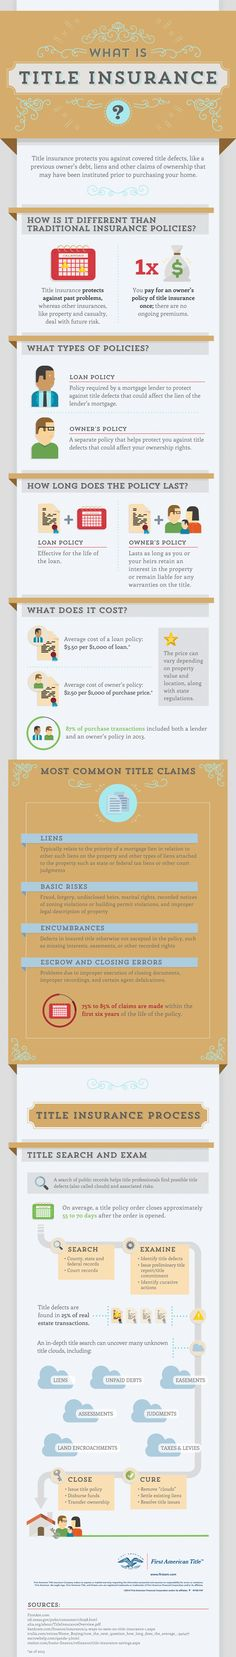 Title Insurance Information for Kentucky Mortgage Loans home mortgages. What is Title Insurance? Owners title insurance and Lender title insurance differences? Real Estate Business, Real Estate Tips, Real Estate Investing, Real Estate Marketing, Insurance Humor, Title Insurance, Insurance Marketing, Mortgage Humor, Tips